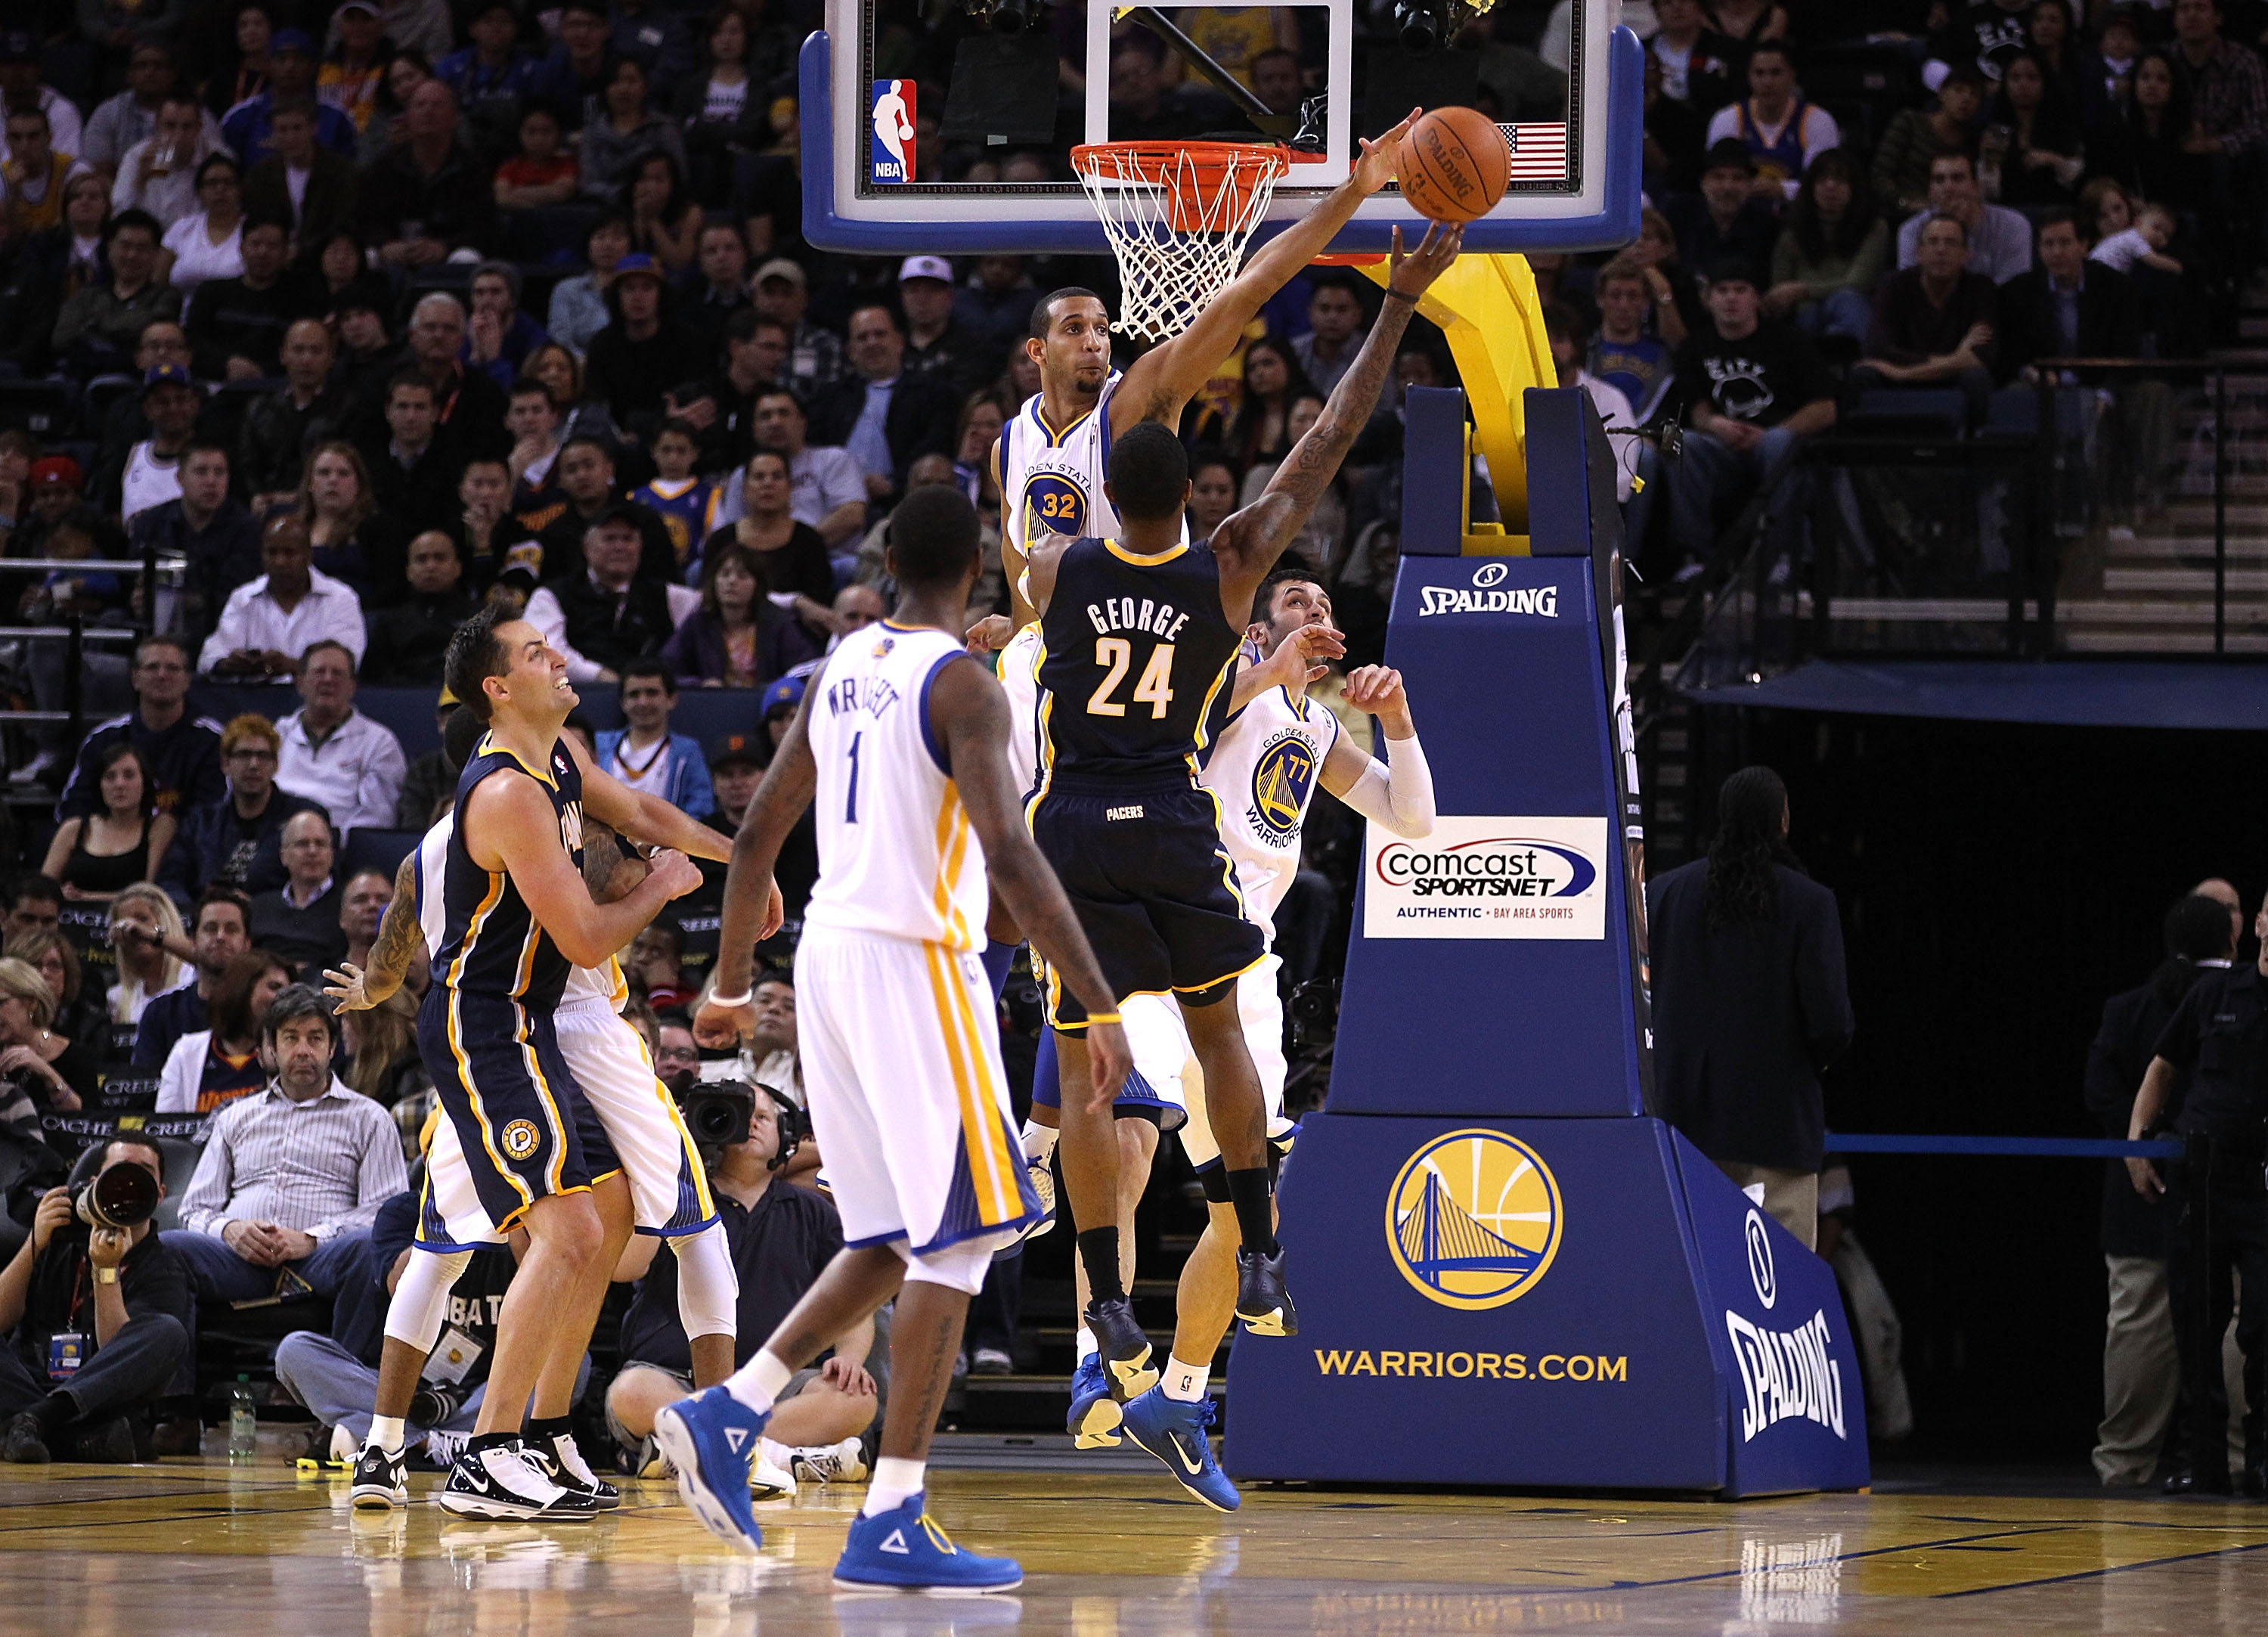 OAKLAND, CA - JANUARY 19:  Paul George #24 of the Indiana Pacers has a shot blocked by Brandan Wright #32 of the Golden State Warriors at Oracle Arena on January 19, 2011 in Oakland, California.  NOTE TO USER: User expressly acknowledges and agrees that,